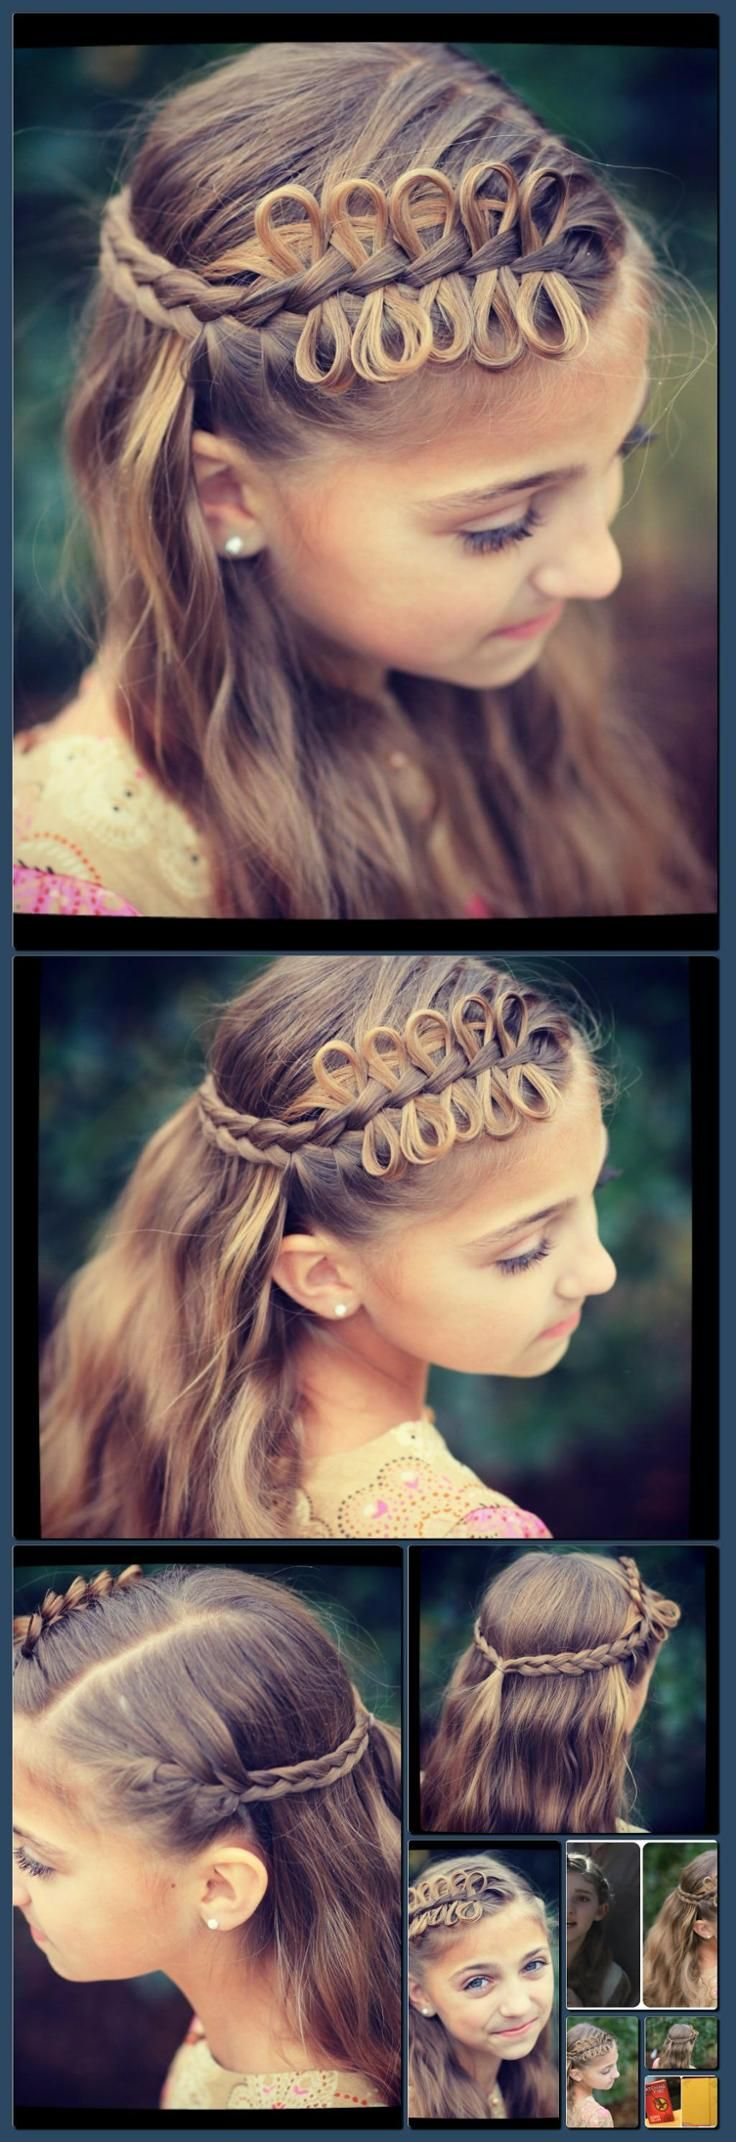 Hunger Games Hairstyles | Cute Girls Hairstyles [Collage made with one click using http://pagecollage.com] #pagecollage